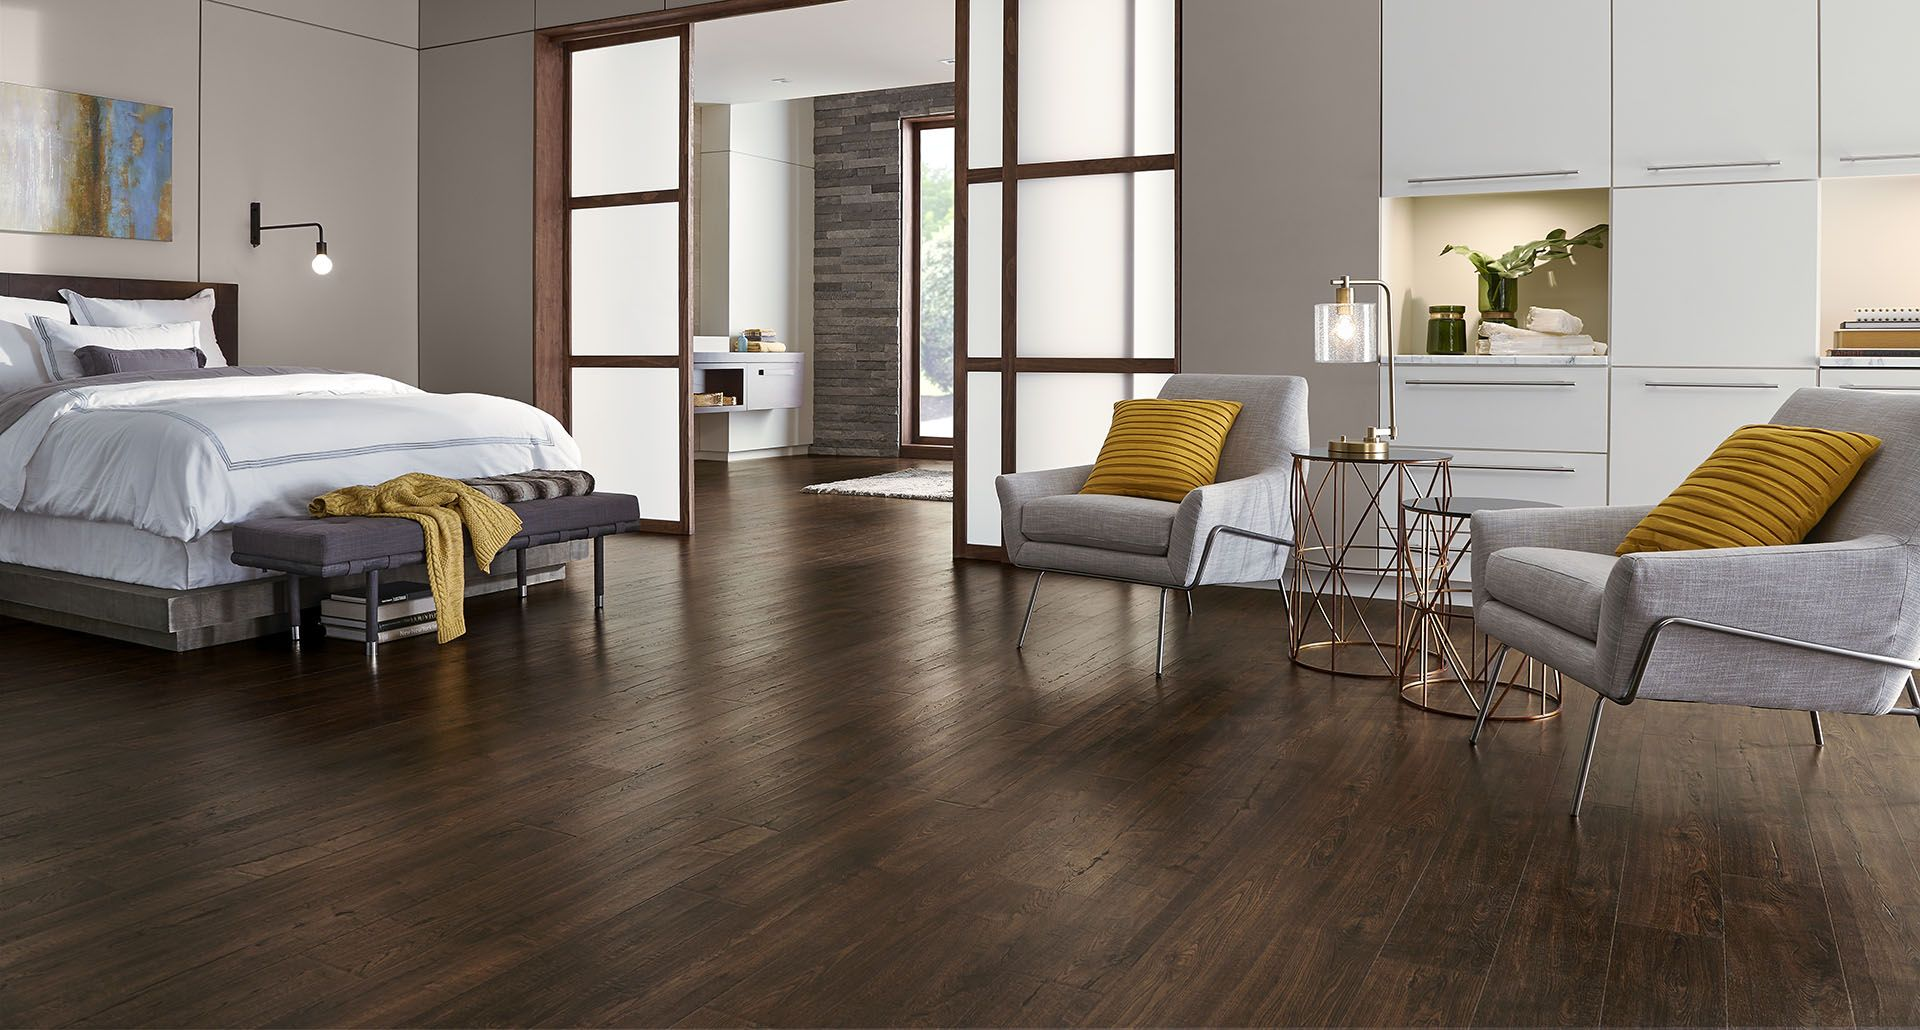 Java Scraped Oak Pergo Outlast Laminate Flooring Creates